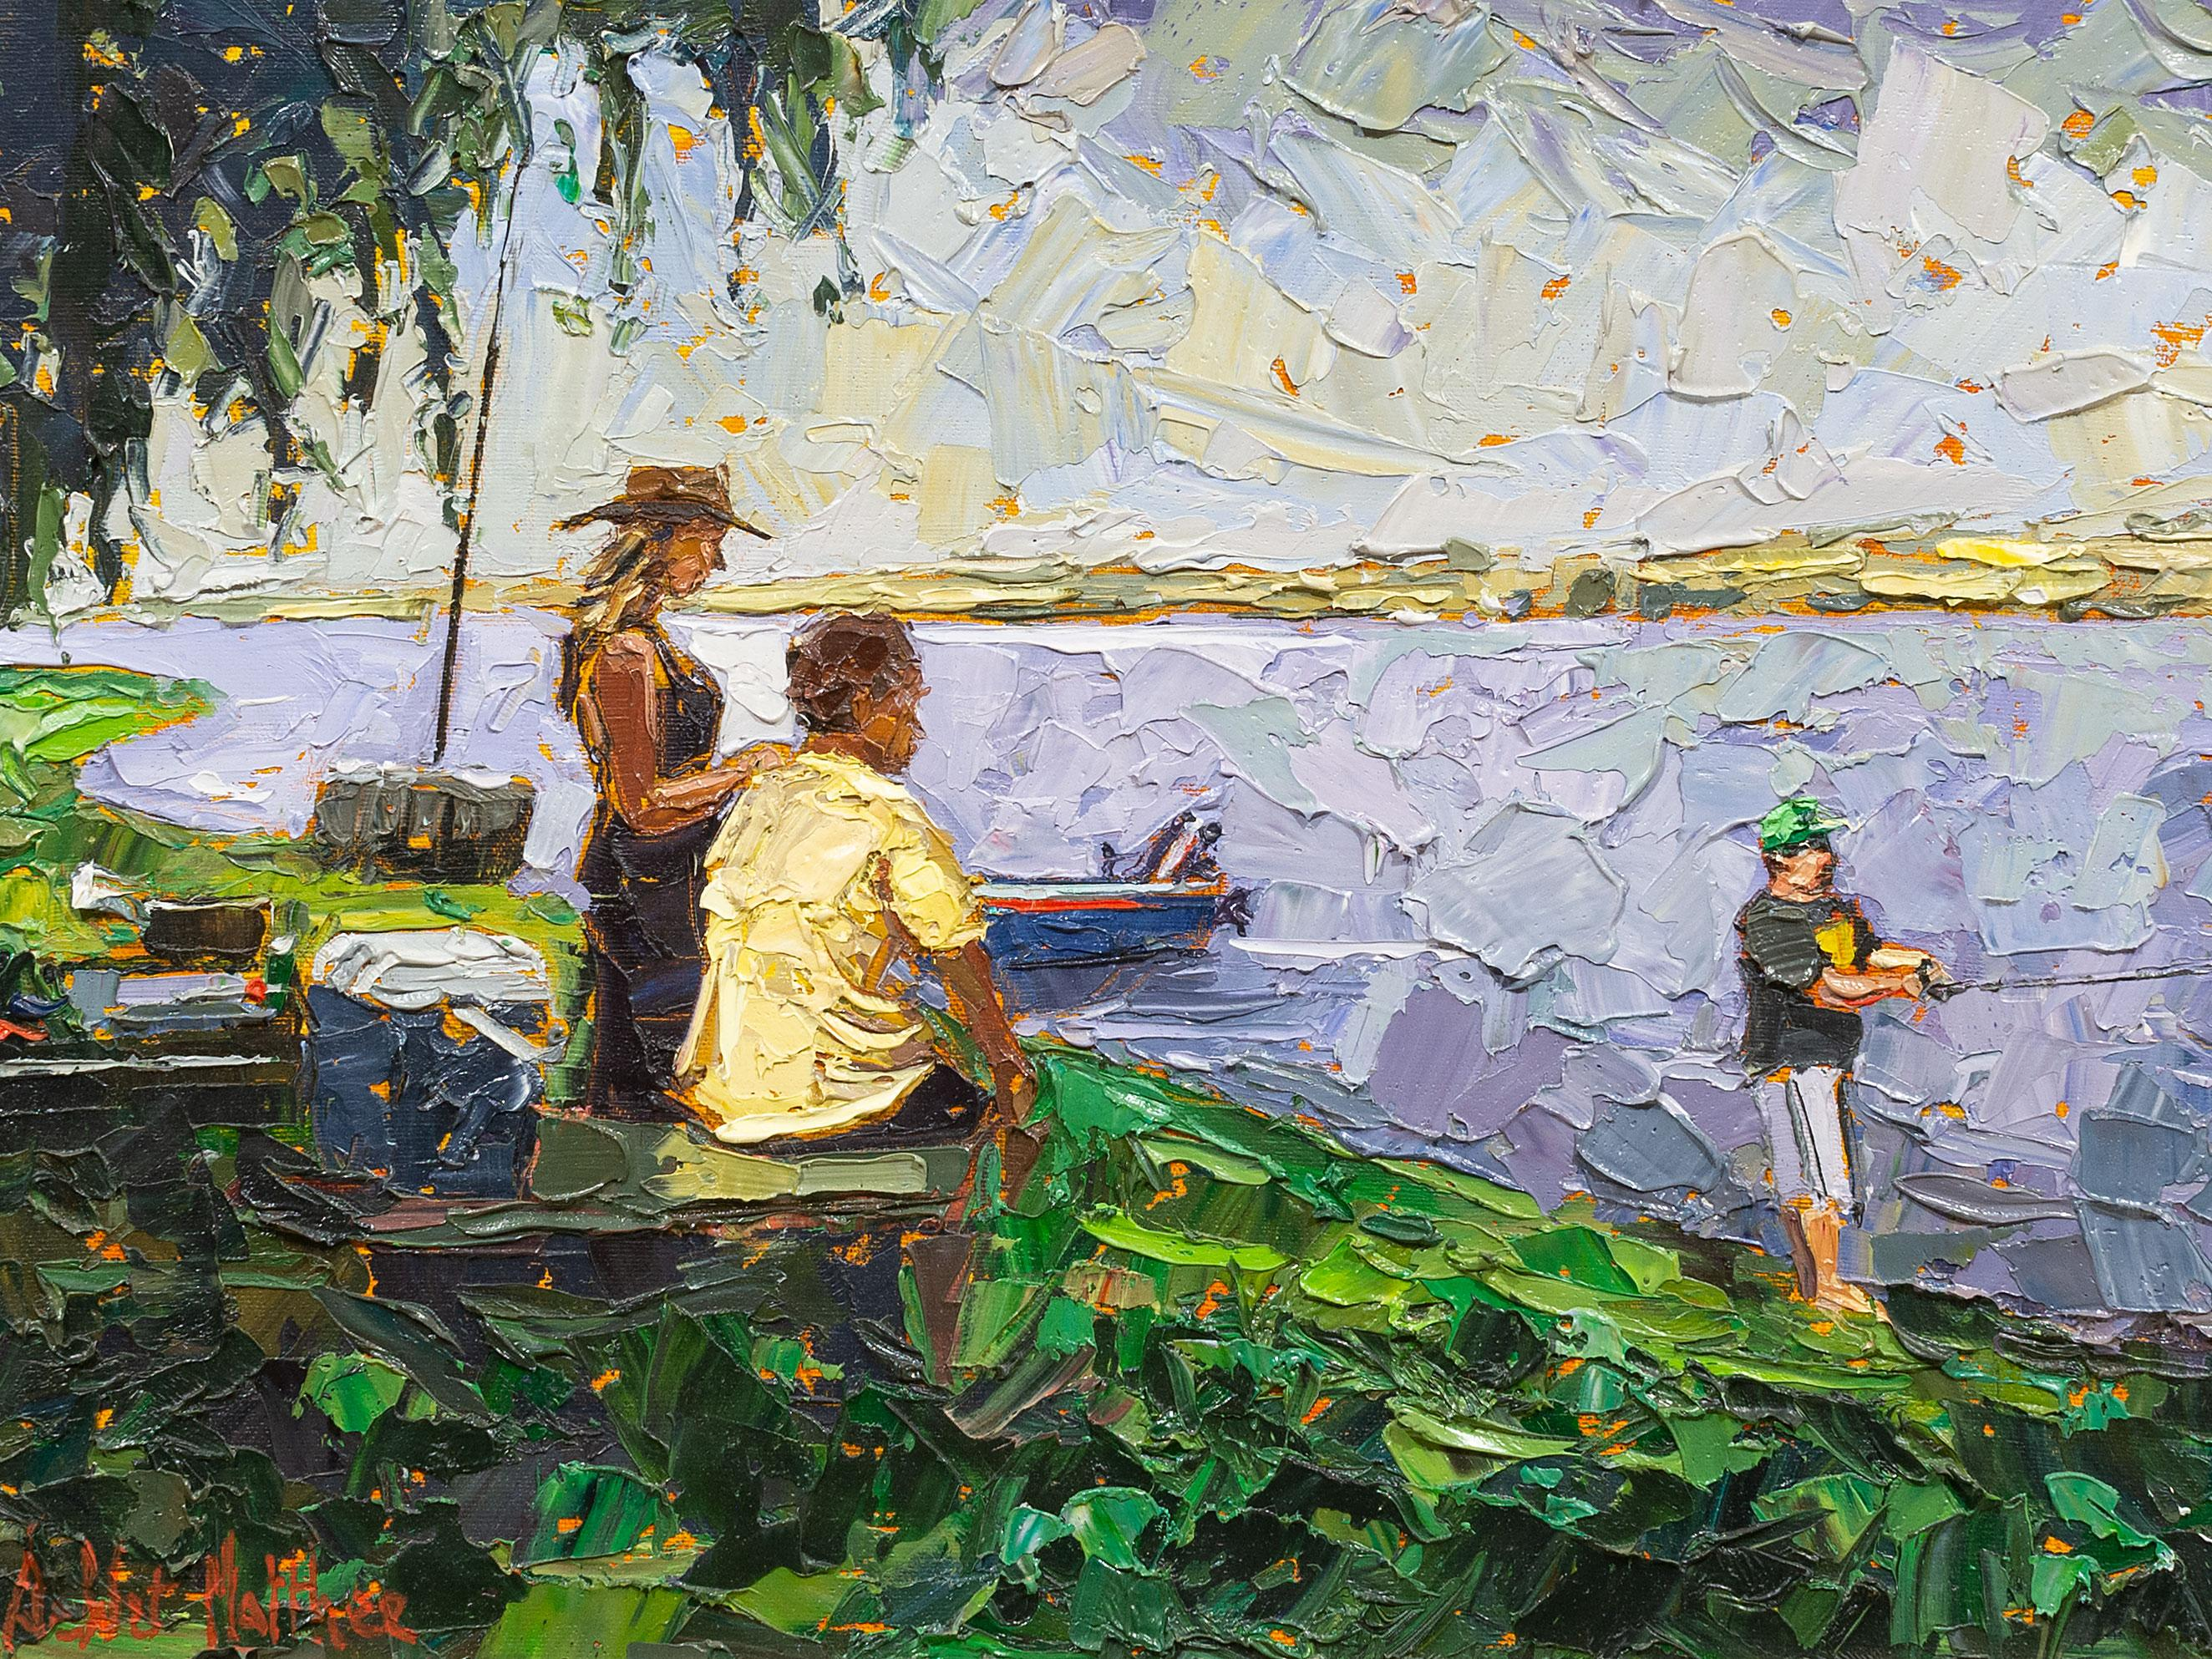 De Wet Matthee (SA, born 1979) Oil, A Day at the Dam, Signed, 32 x 45